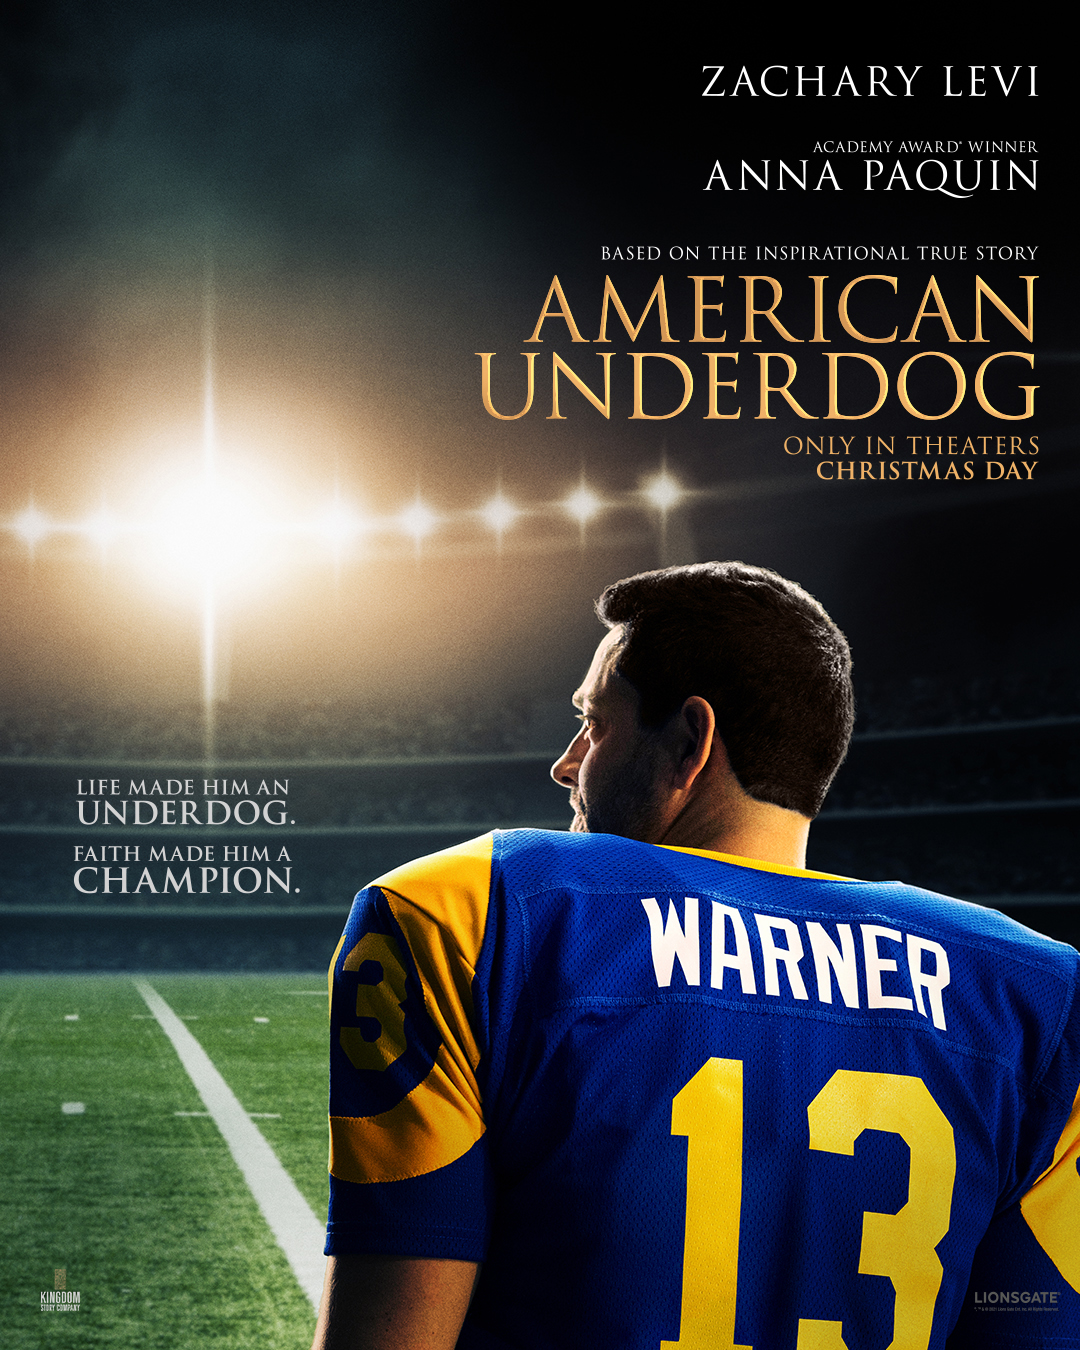 AMERICAN UNDERDOG – Kurt & Brenda Warner's amazing story – lands coveted Christmas Day nationwide release from Lionsgate